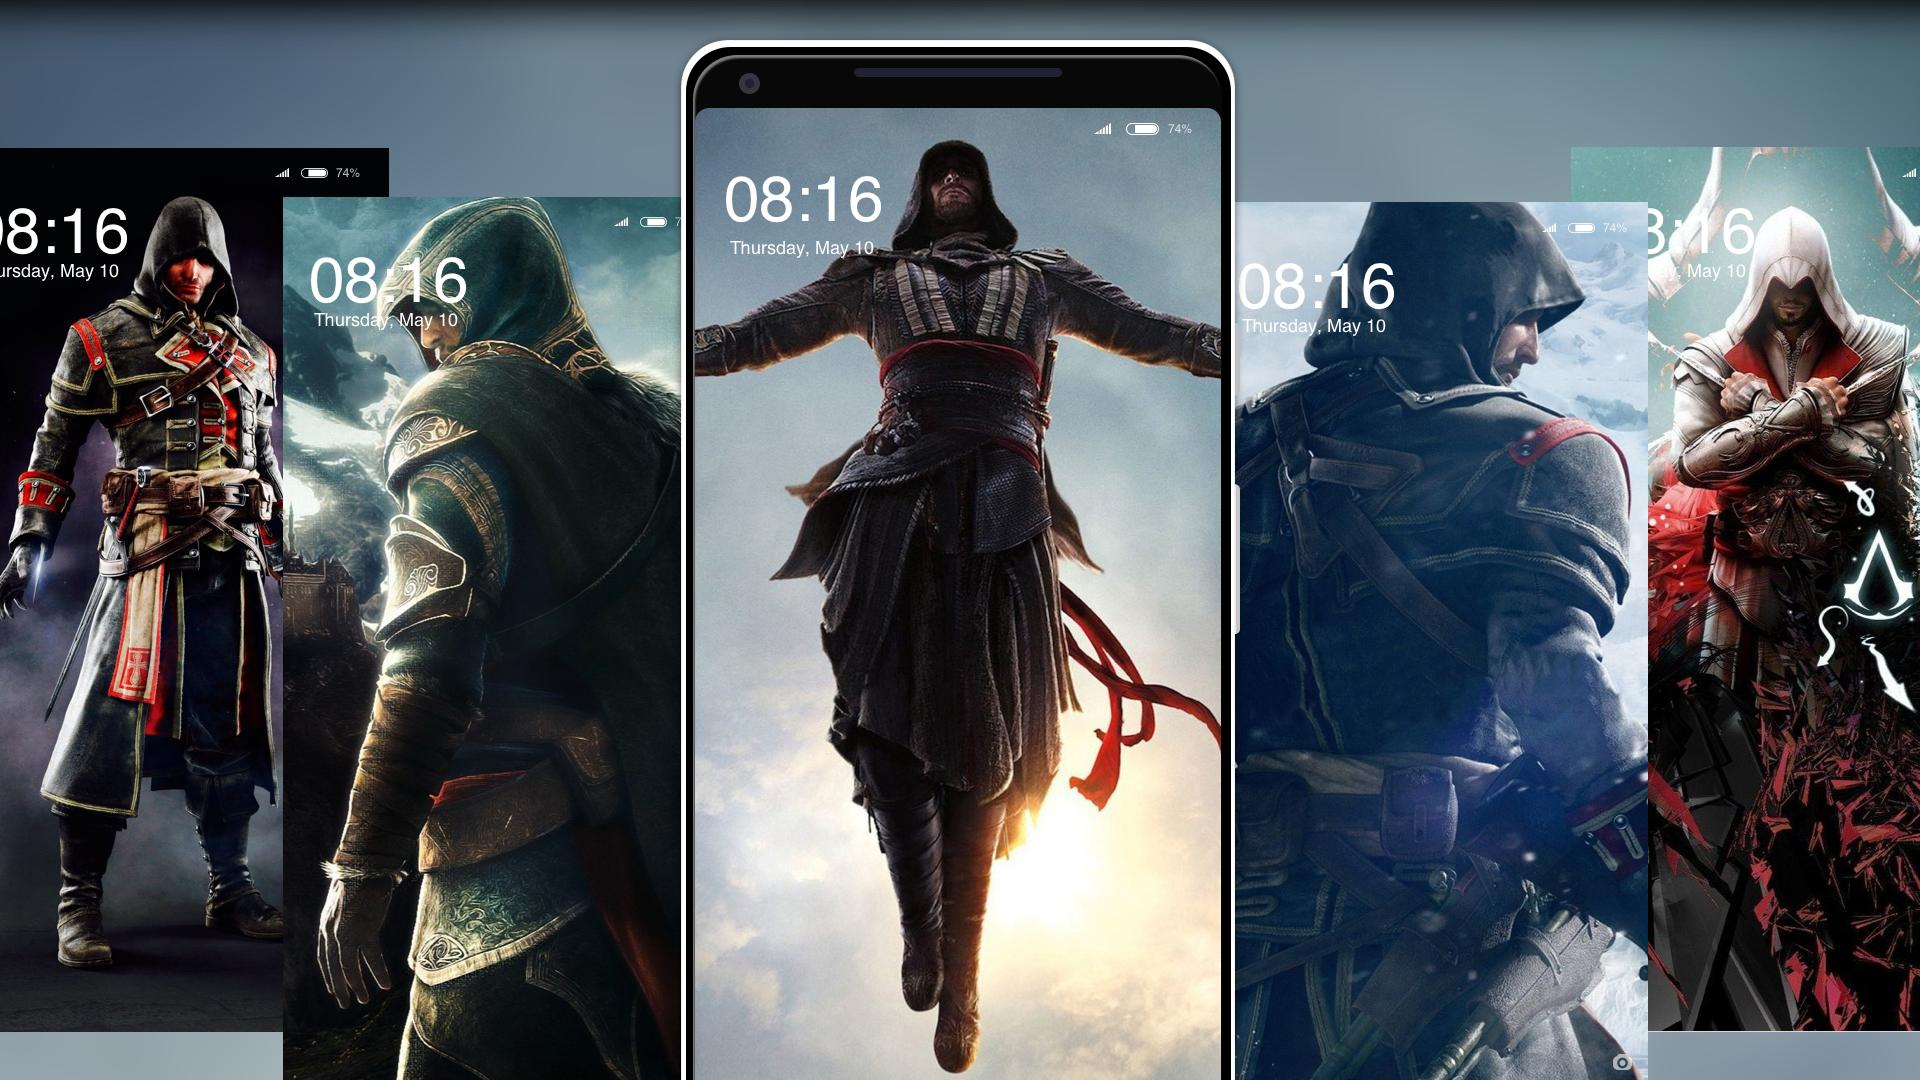 Assassin S Creed Wallpapers For Fans For Android Apk Download